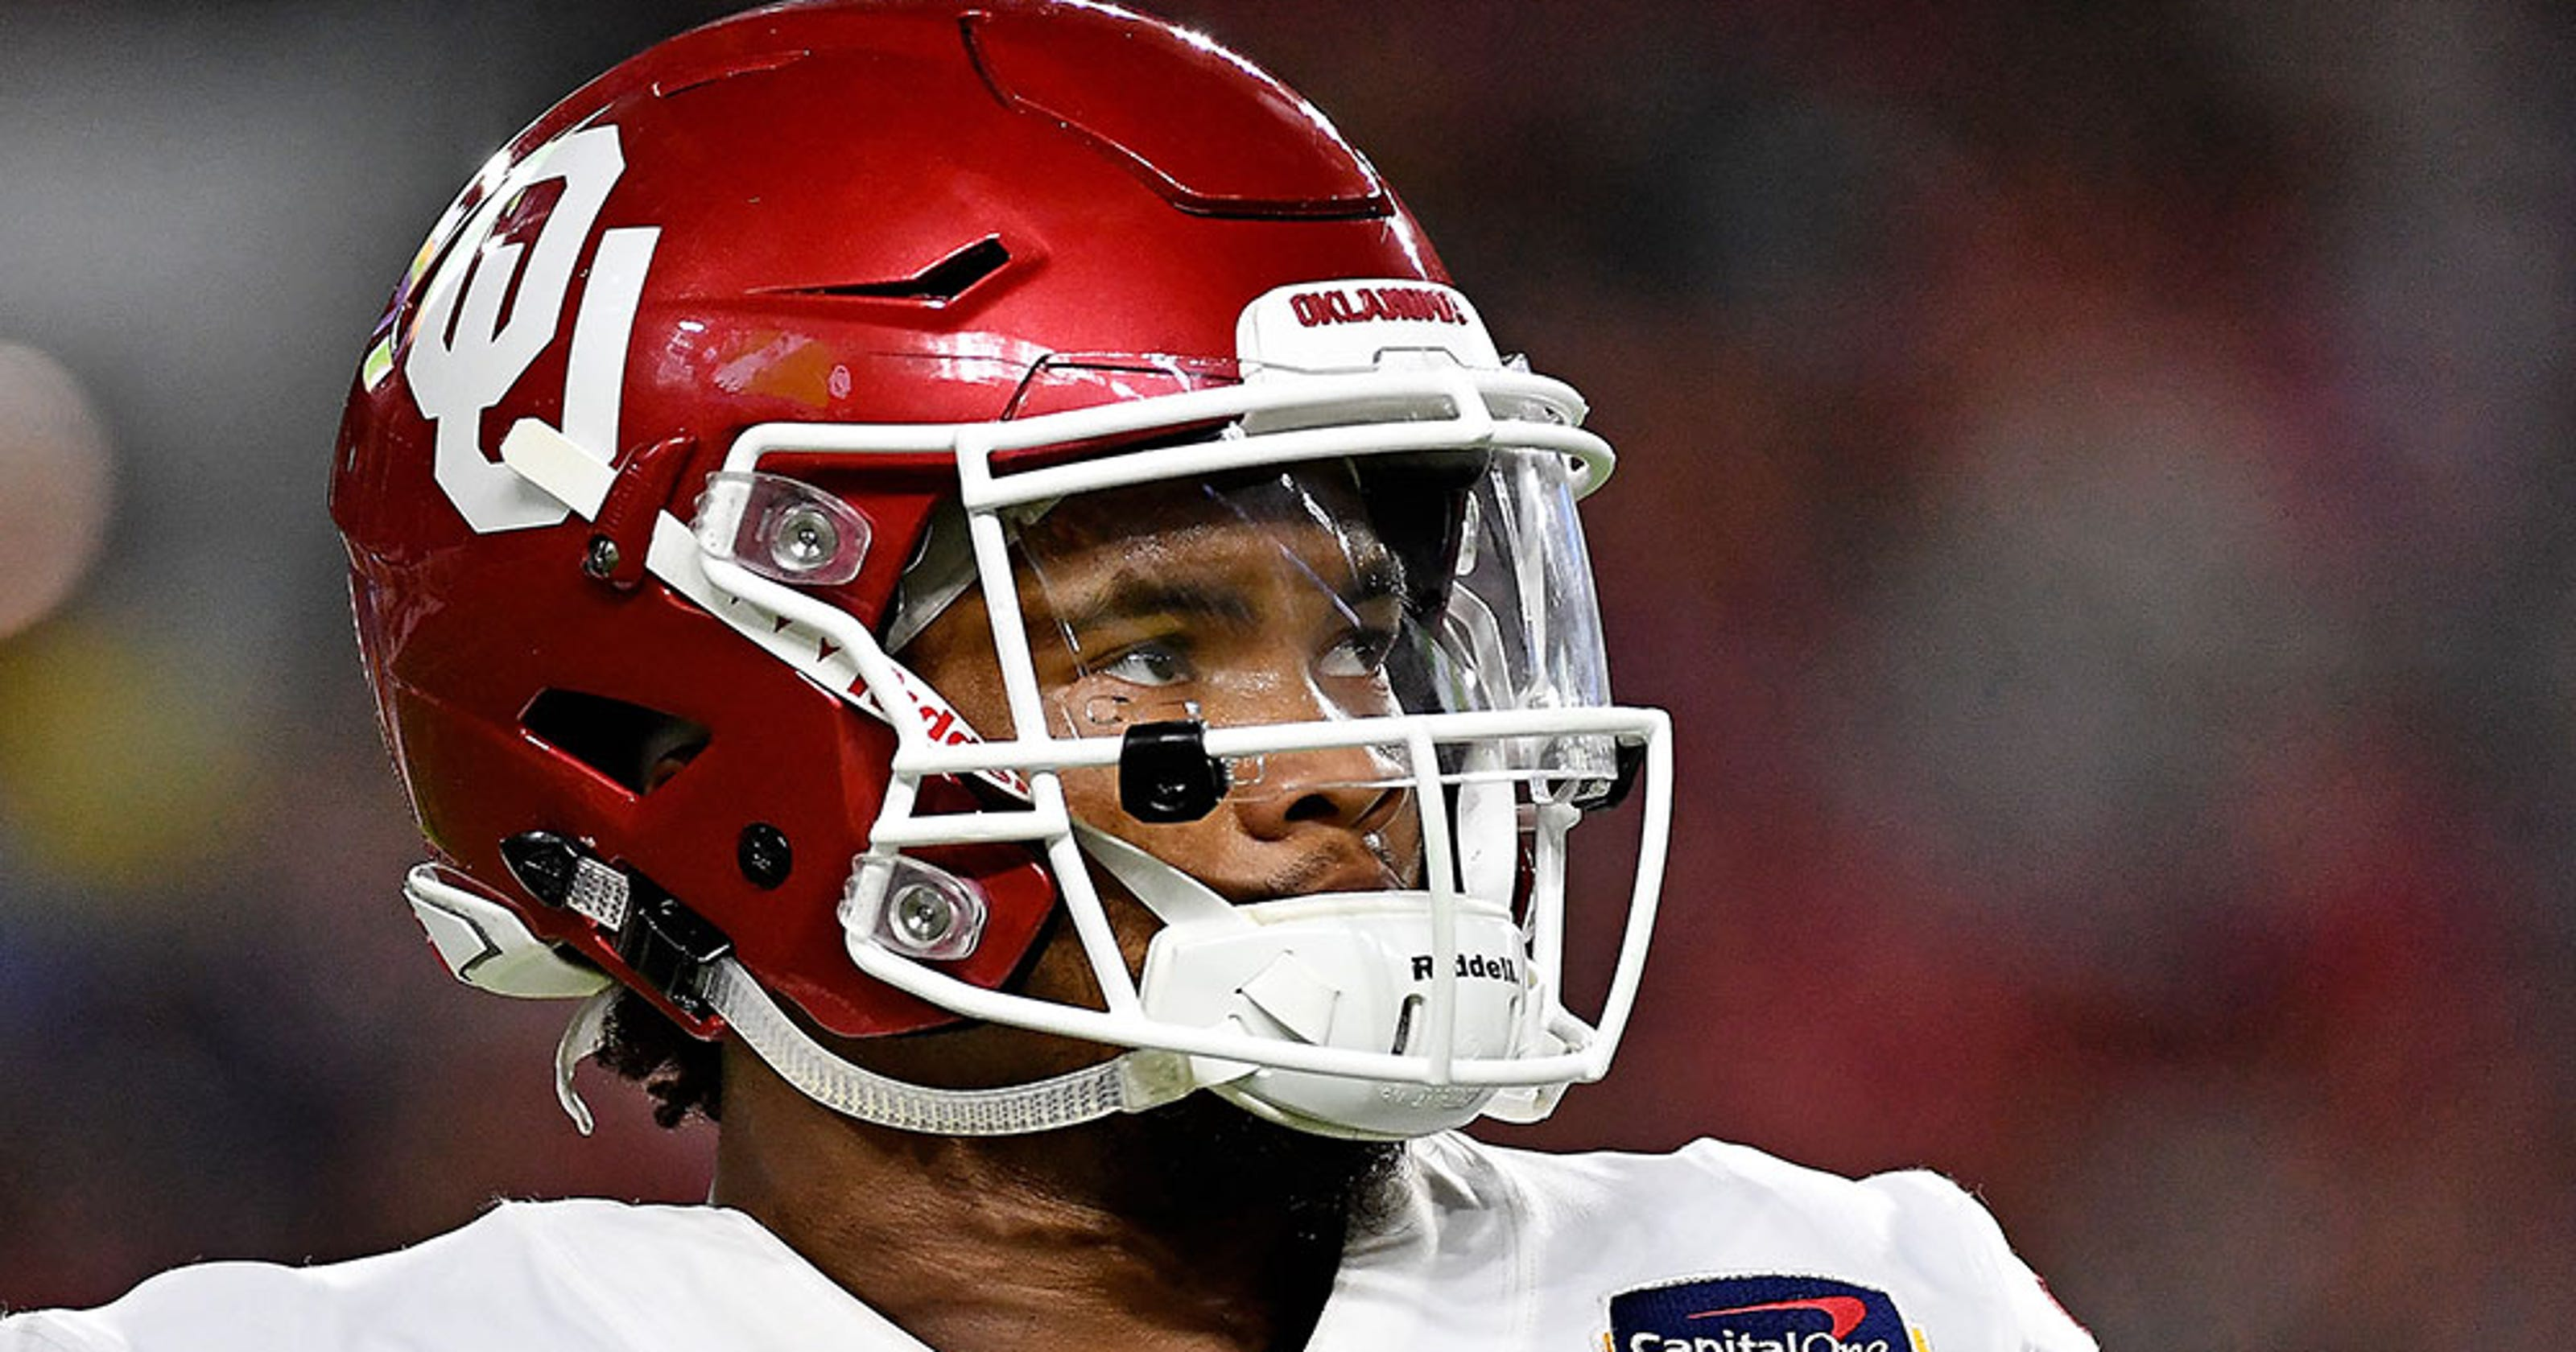 This photo of Kyler Murray led to more speculation about his height